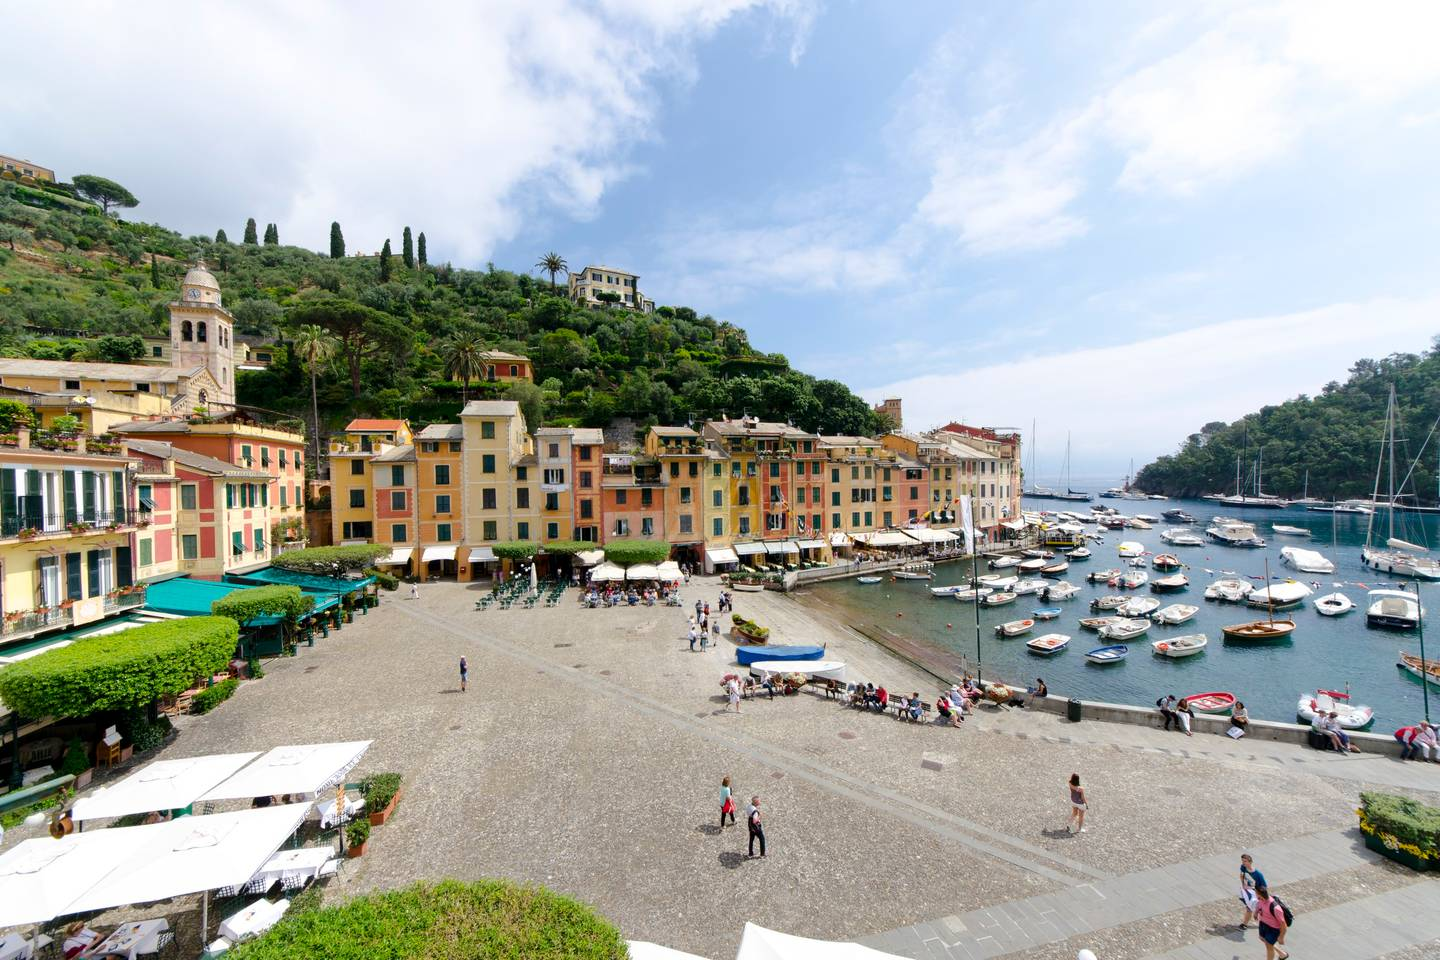 Apartment Hintown  La Finestra sulla Piazzetta a Portofino photo 18397239